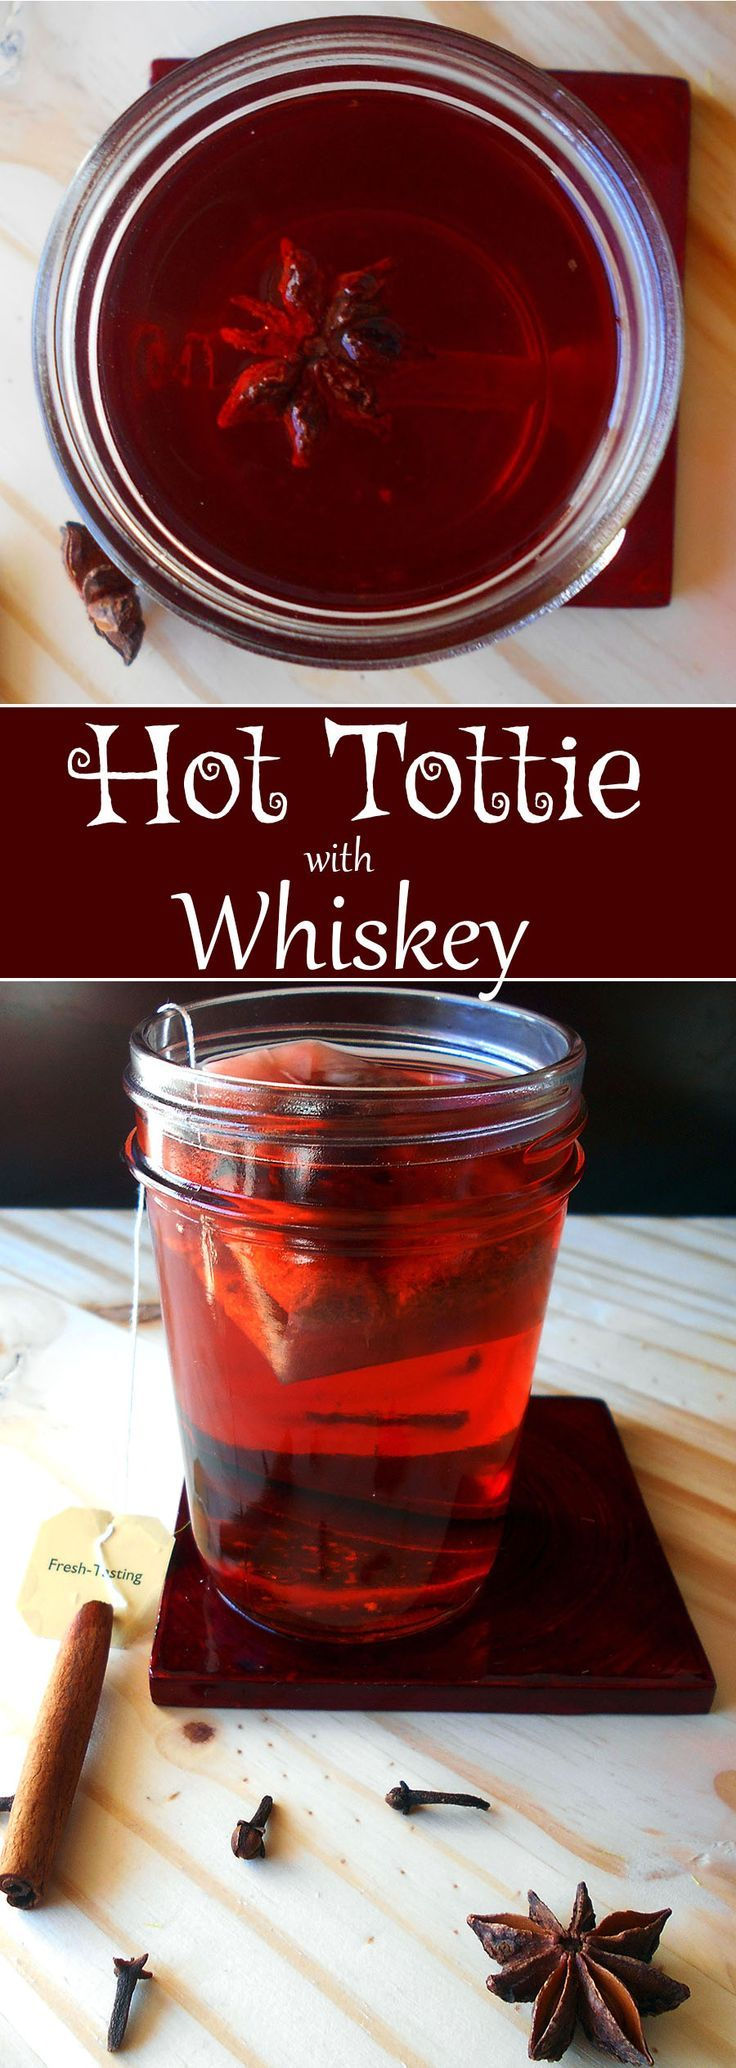 Hot toddy recipe drinks scotch whiskey and most powerful for Hot toddy drink recipe